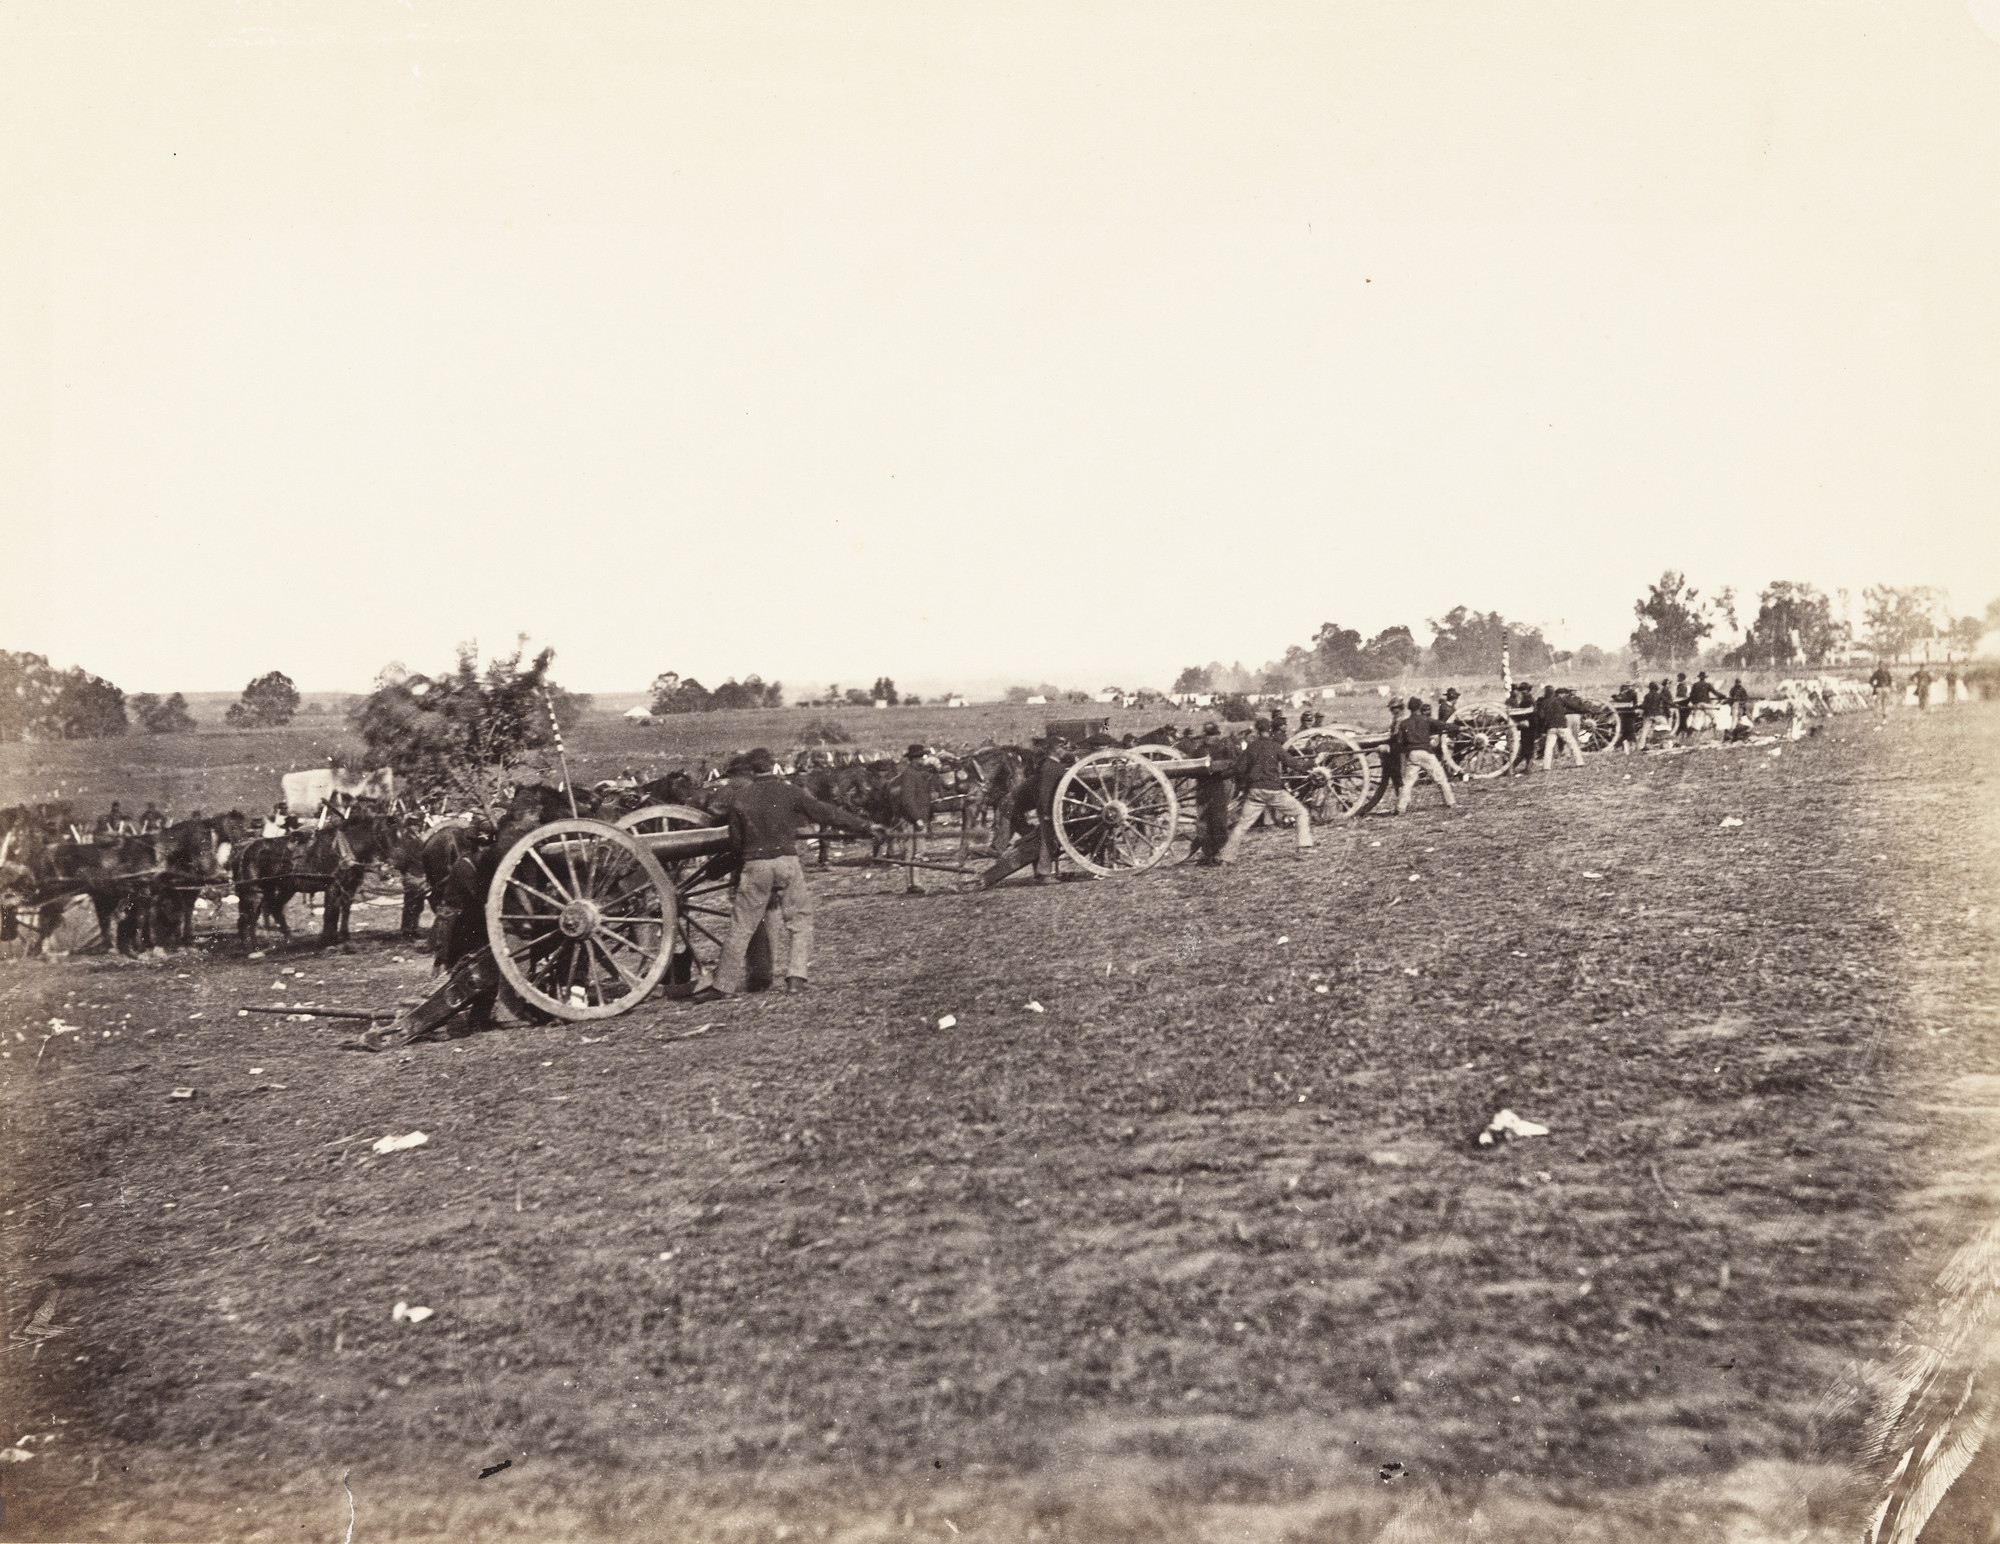 Alexander Gardner, Timothy O'Sullivan. Battery D, Fifth U.S. Artillery in action (Fredericksburg, VA). May, 1862